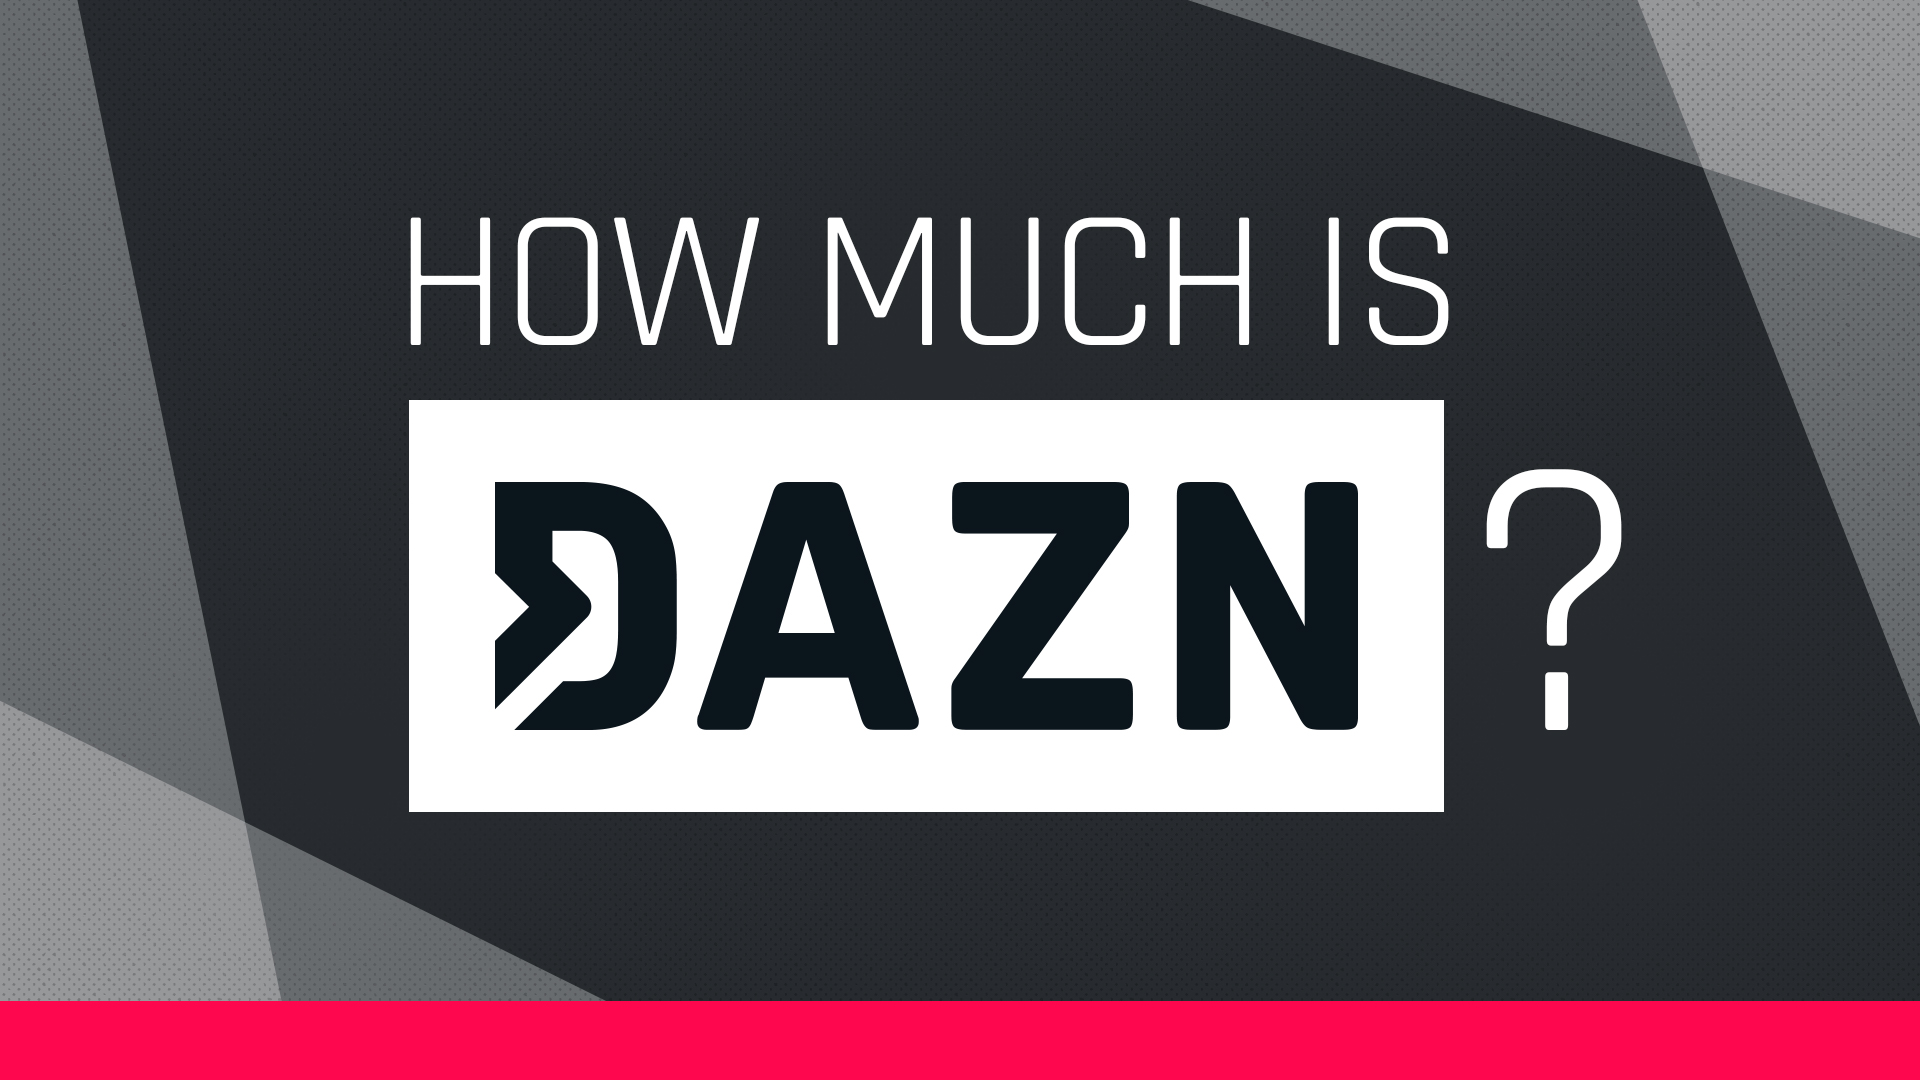 How much does DAZN's live sports streaming service cost?